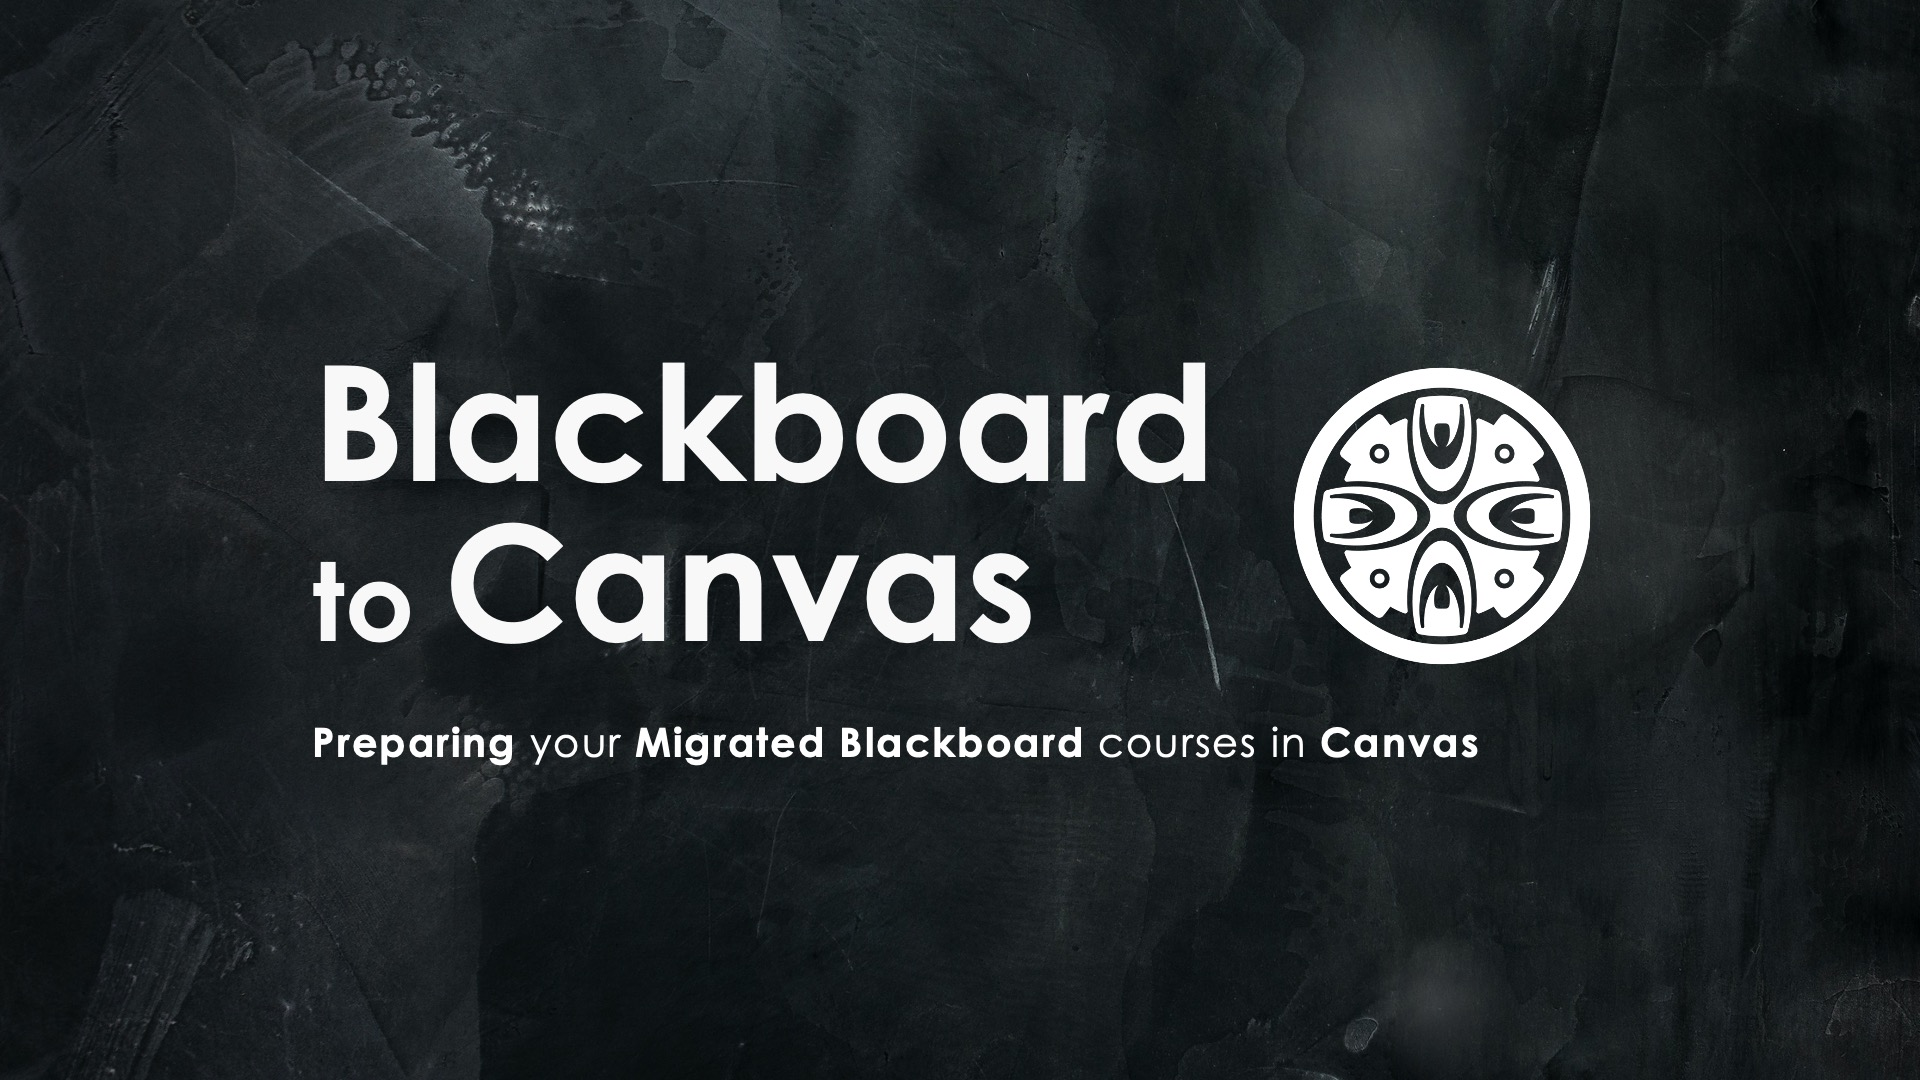 Blackboard to Canvas. Preparing your Migrated Blackboard courses in Canvas.